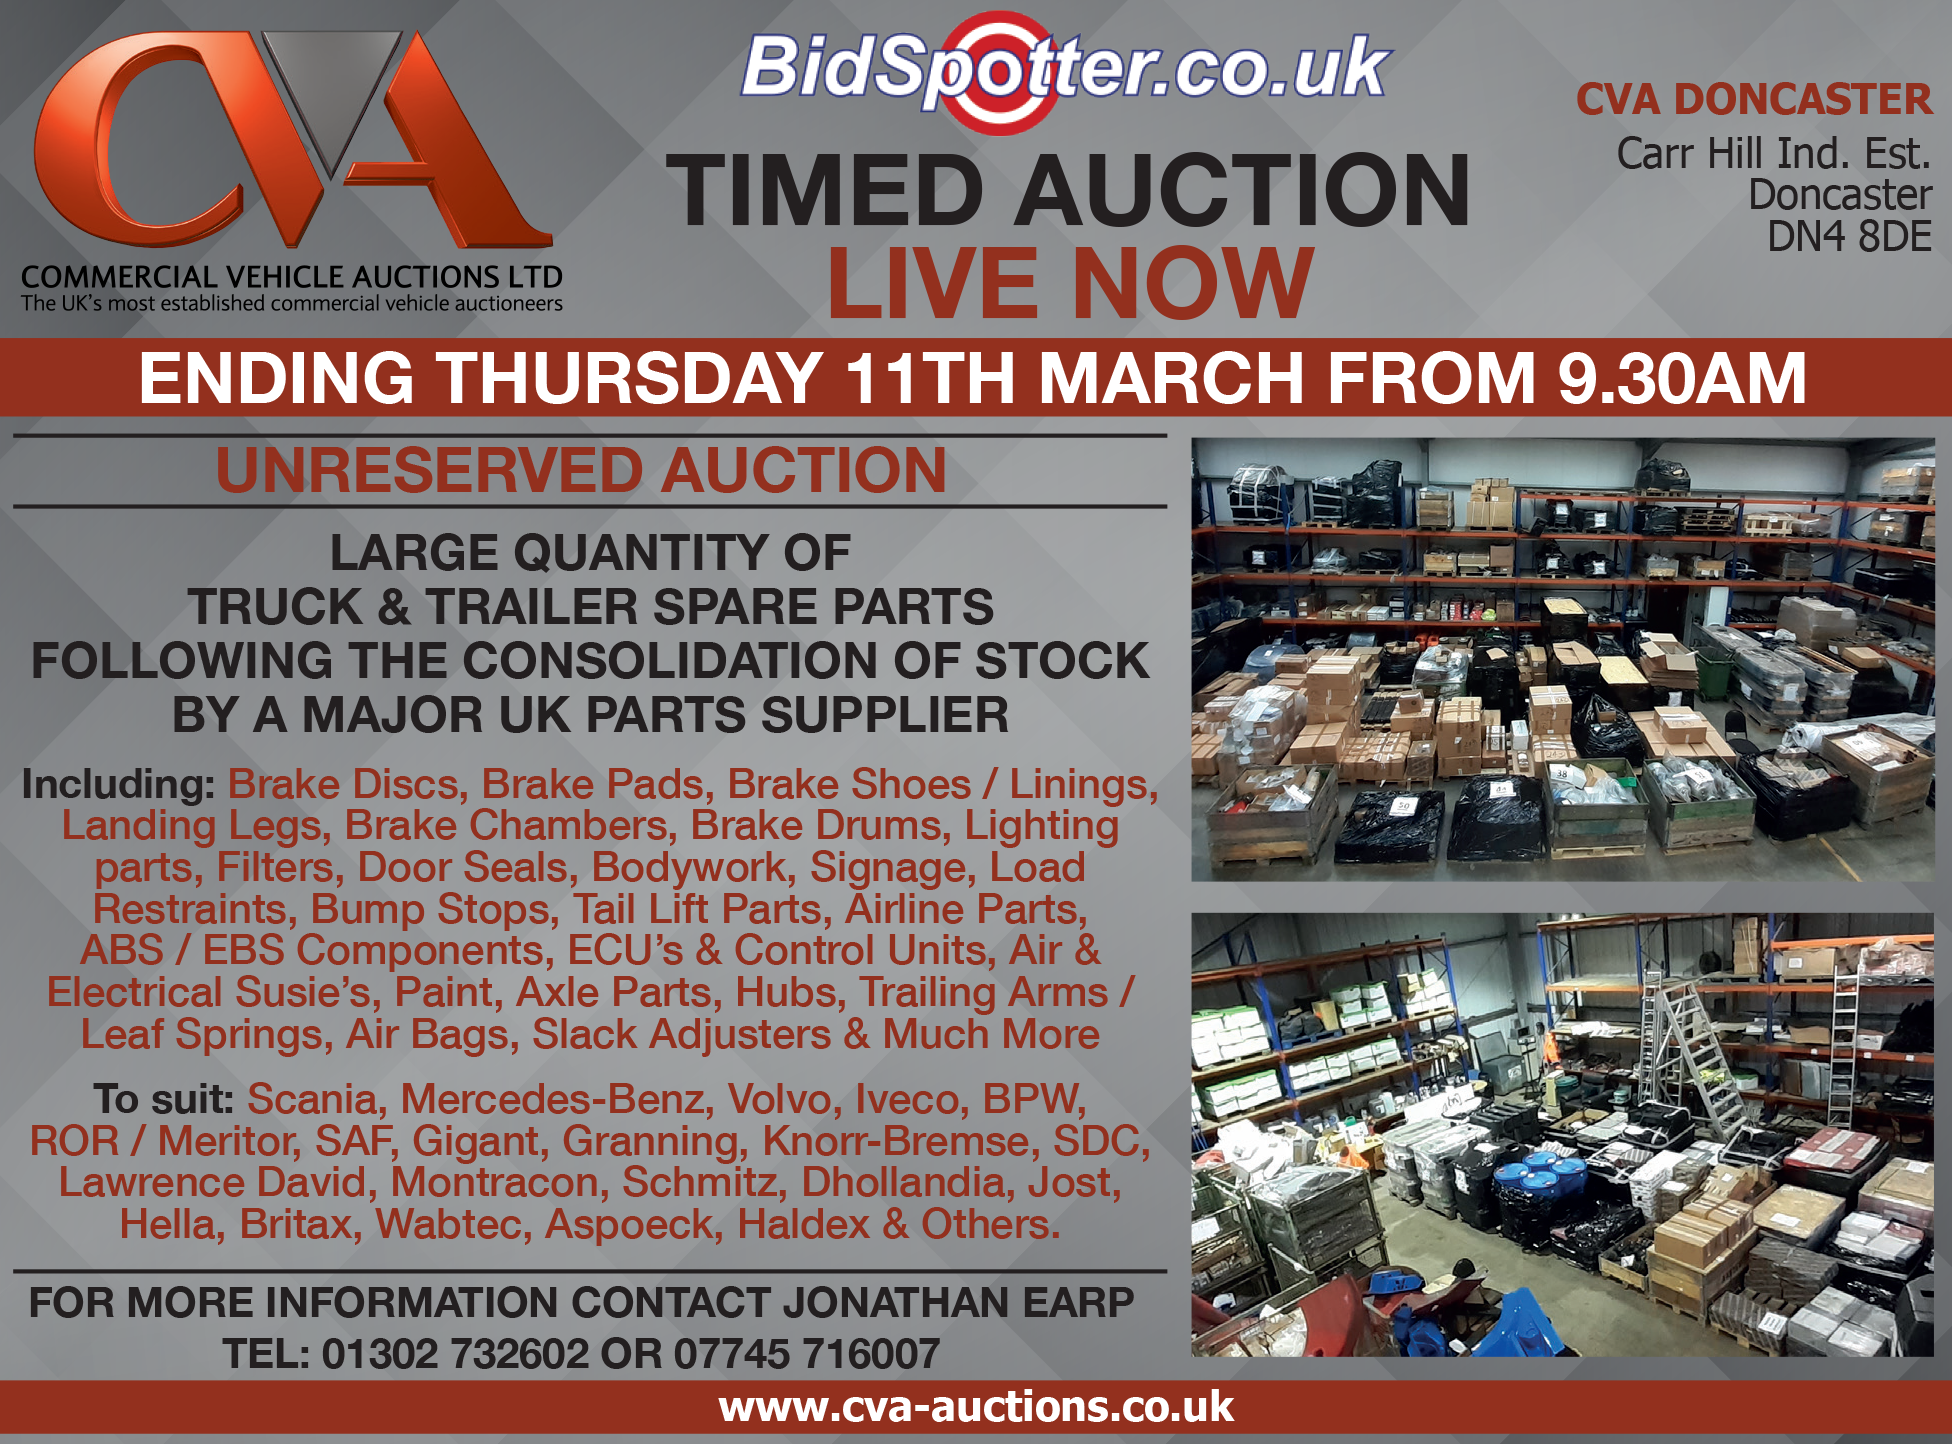 100's of Truck & Trailer Parts up for Timed Auction